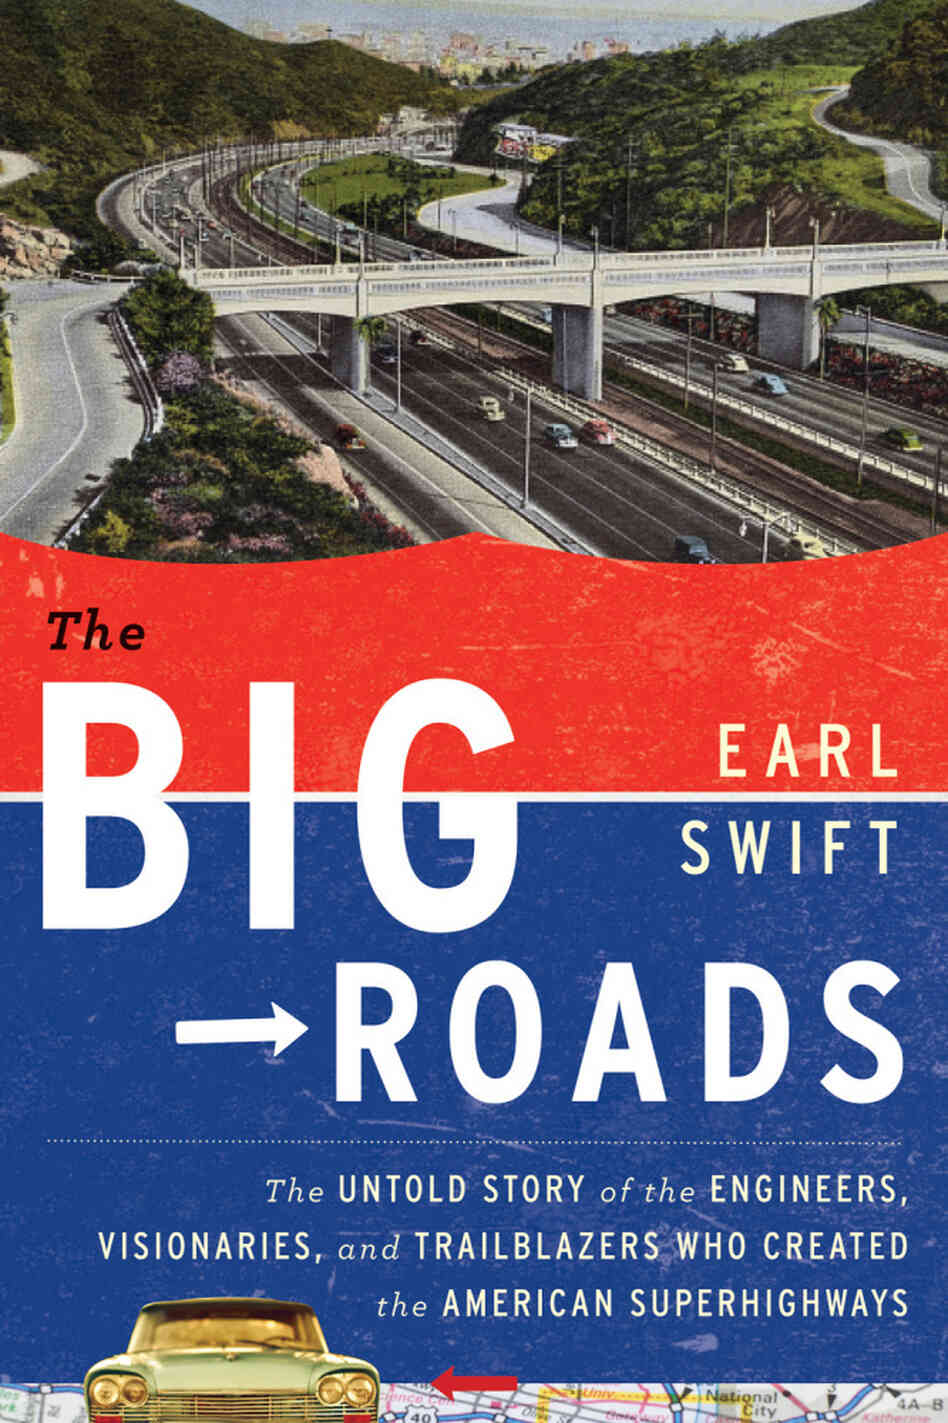 'Big Roads' cover